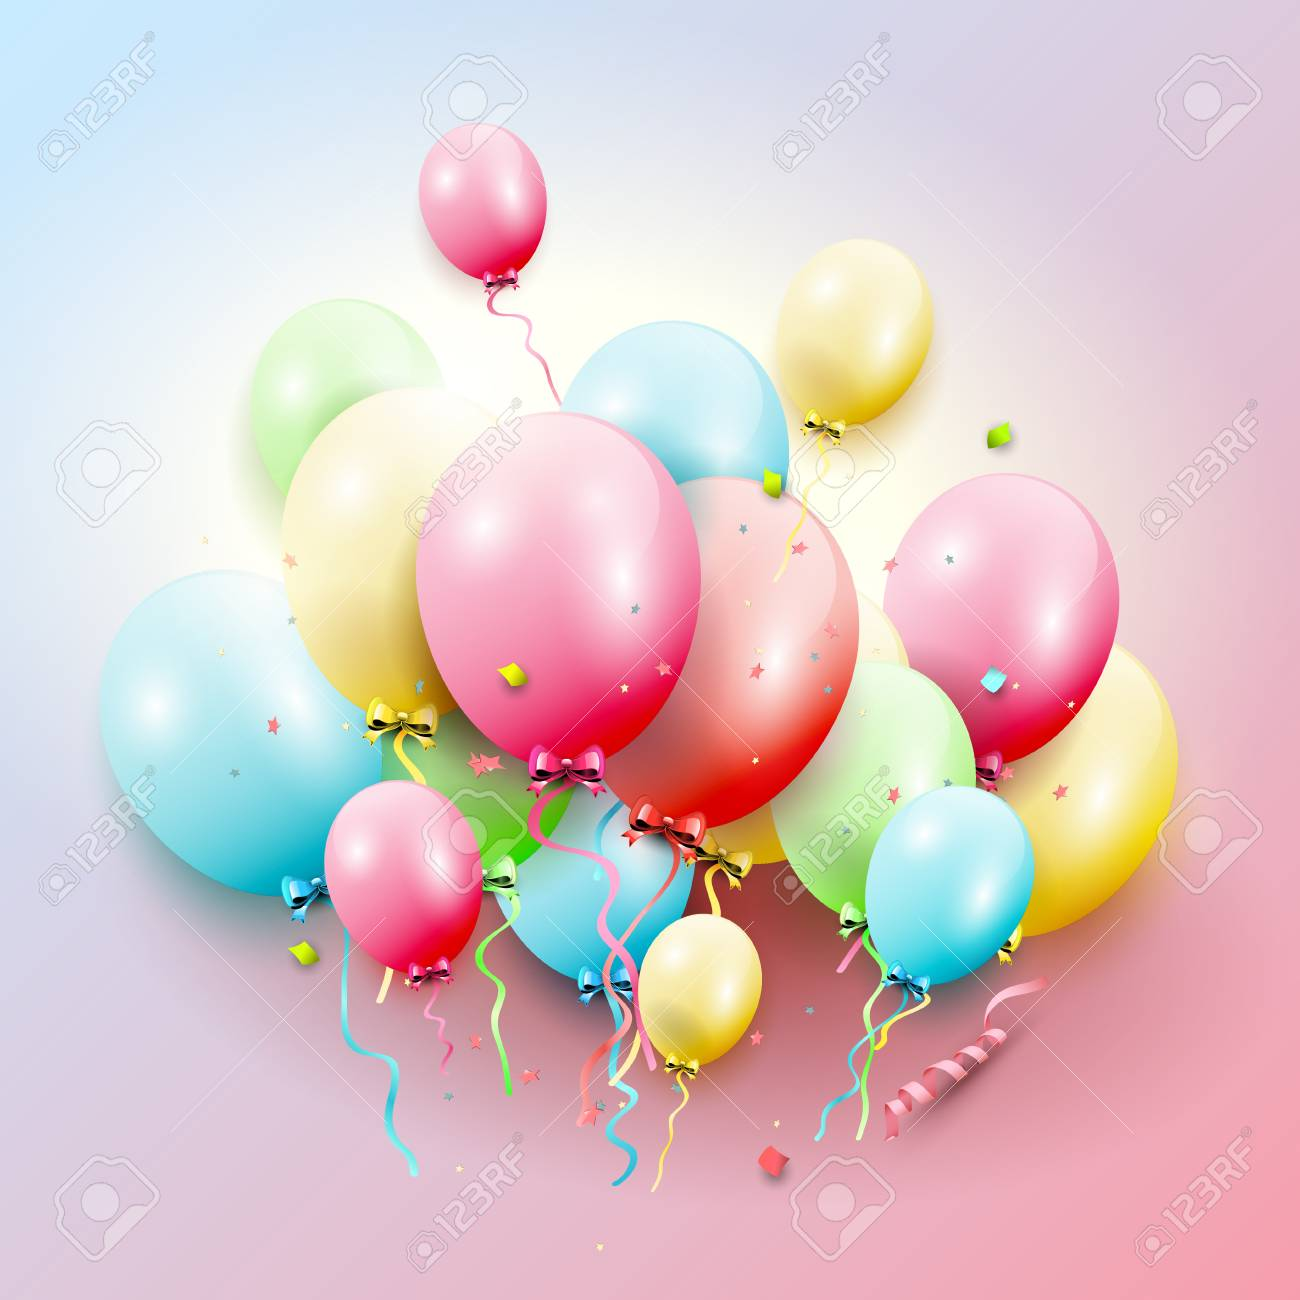 Happy Birthday Greeting Card With Colorful Balloons On Pink Background Stock Vector